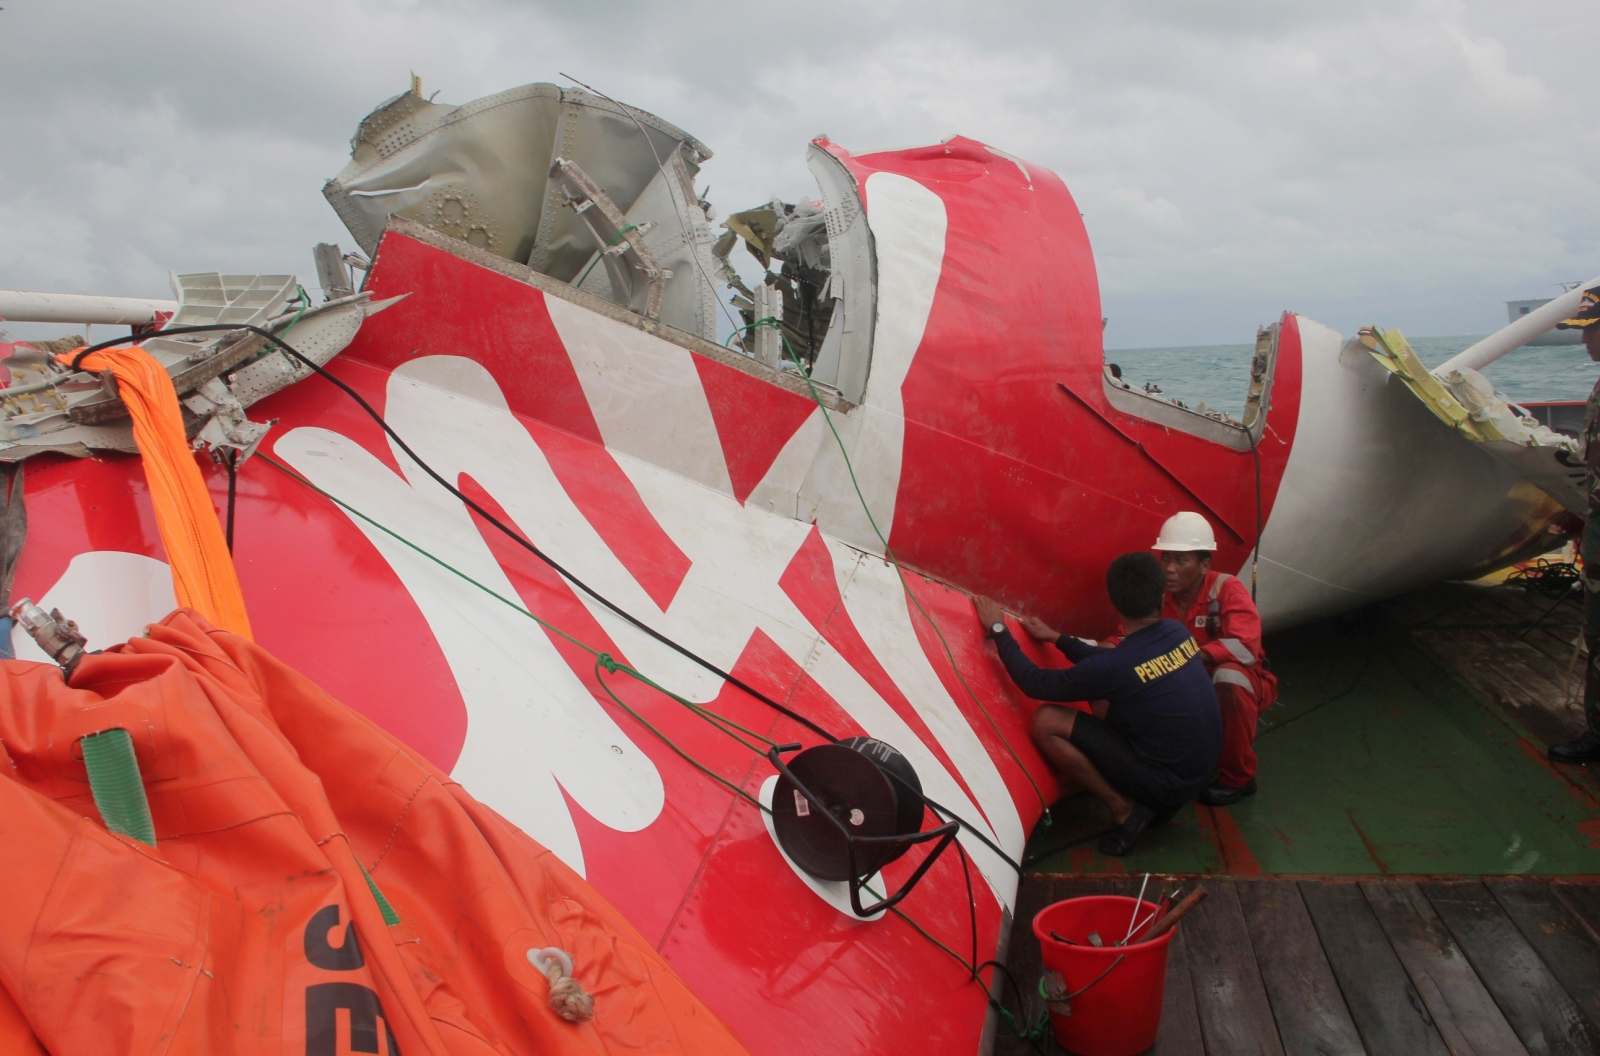 Wreckage from doomed AirAsia flight QZ8501